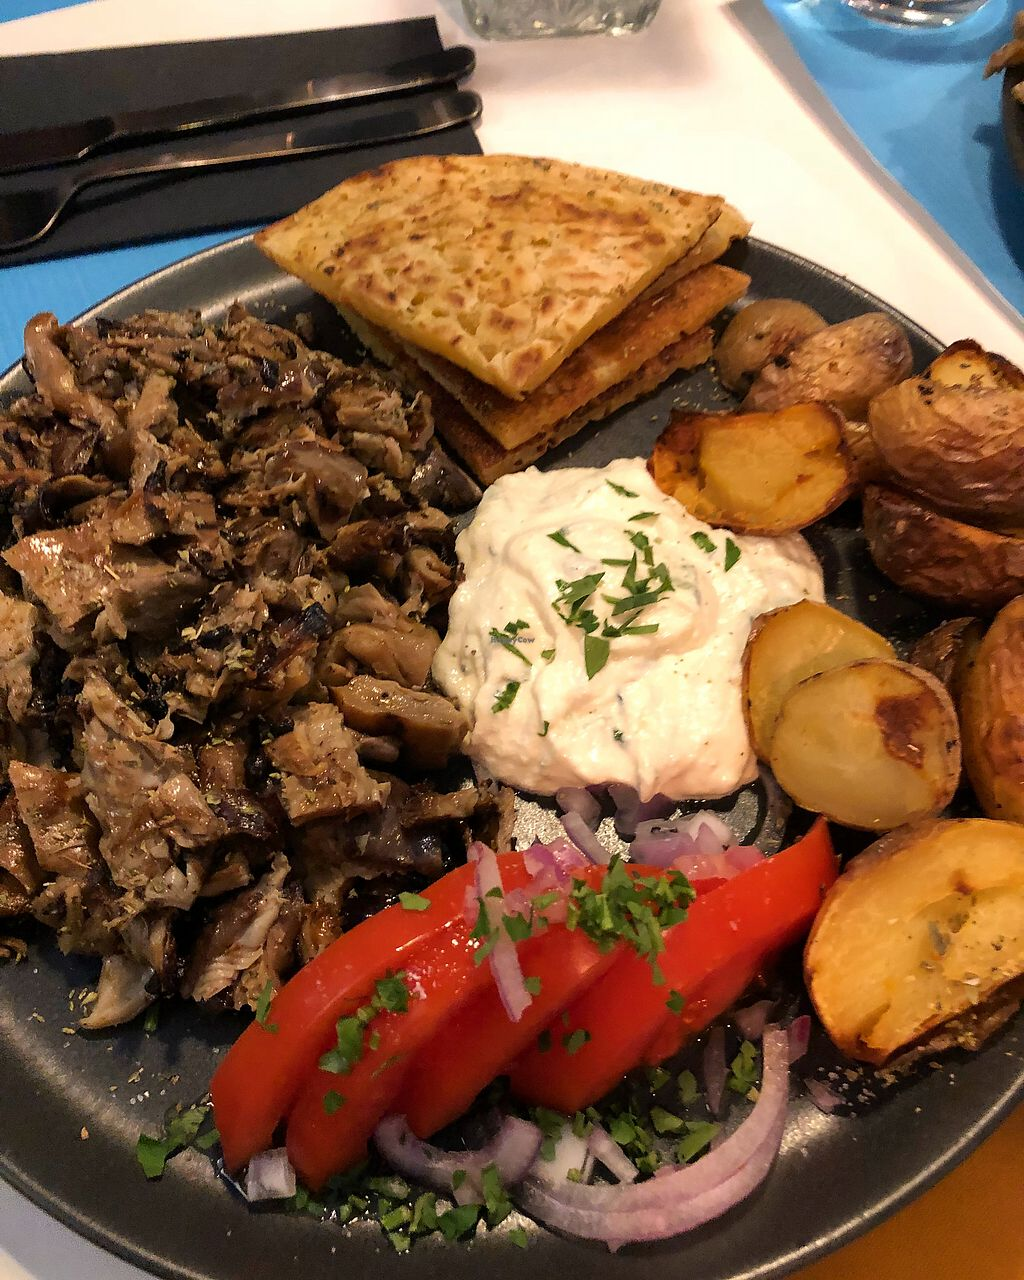 "Photo of Lime Bistro  by <a href=""/members/profile/NicklasKingo"">NicklasKingo</a> <br/>Mushroom gyros <br/> January 10, 2018  - <a href='/contact/abuse/image/83564/345145'>Report</a>"